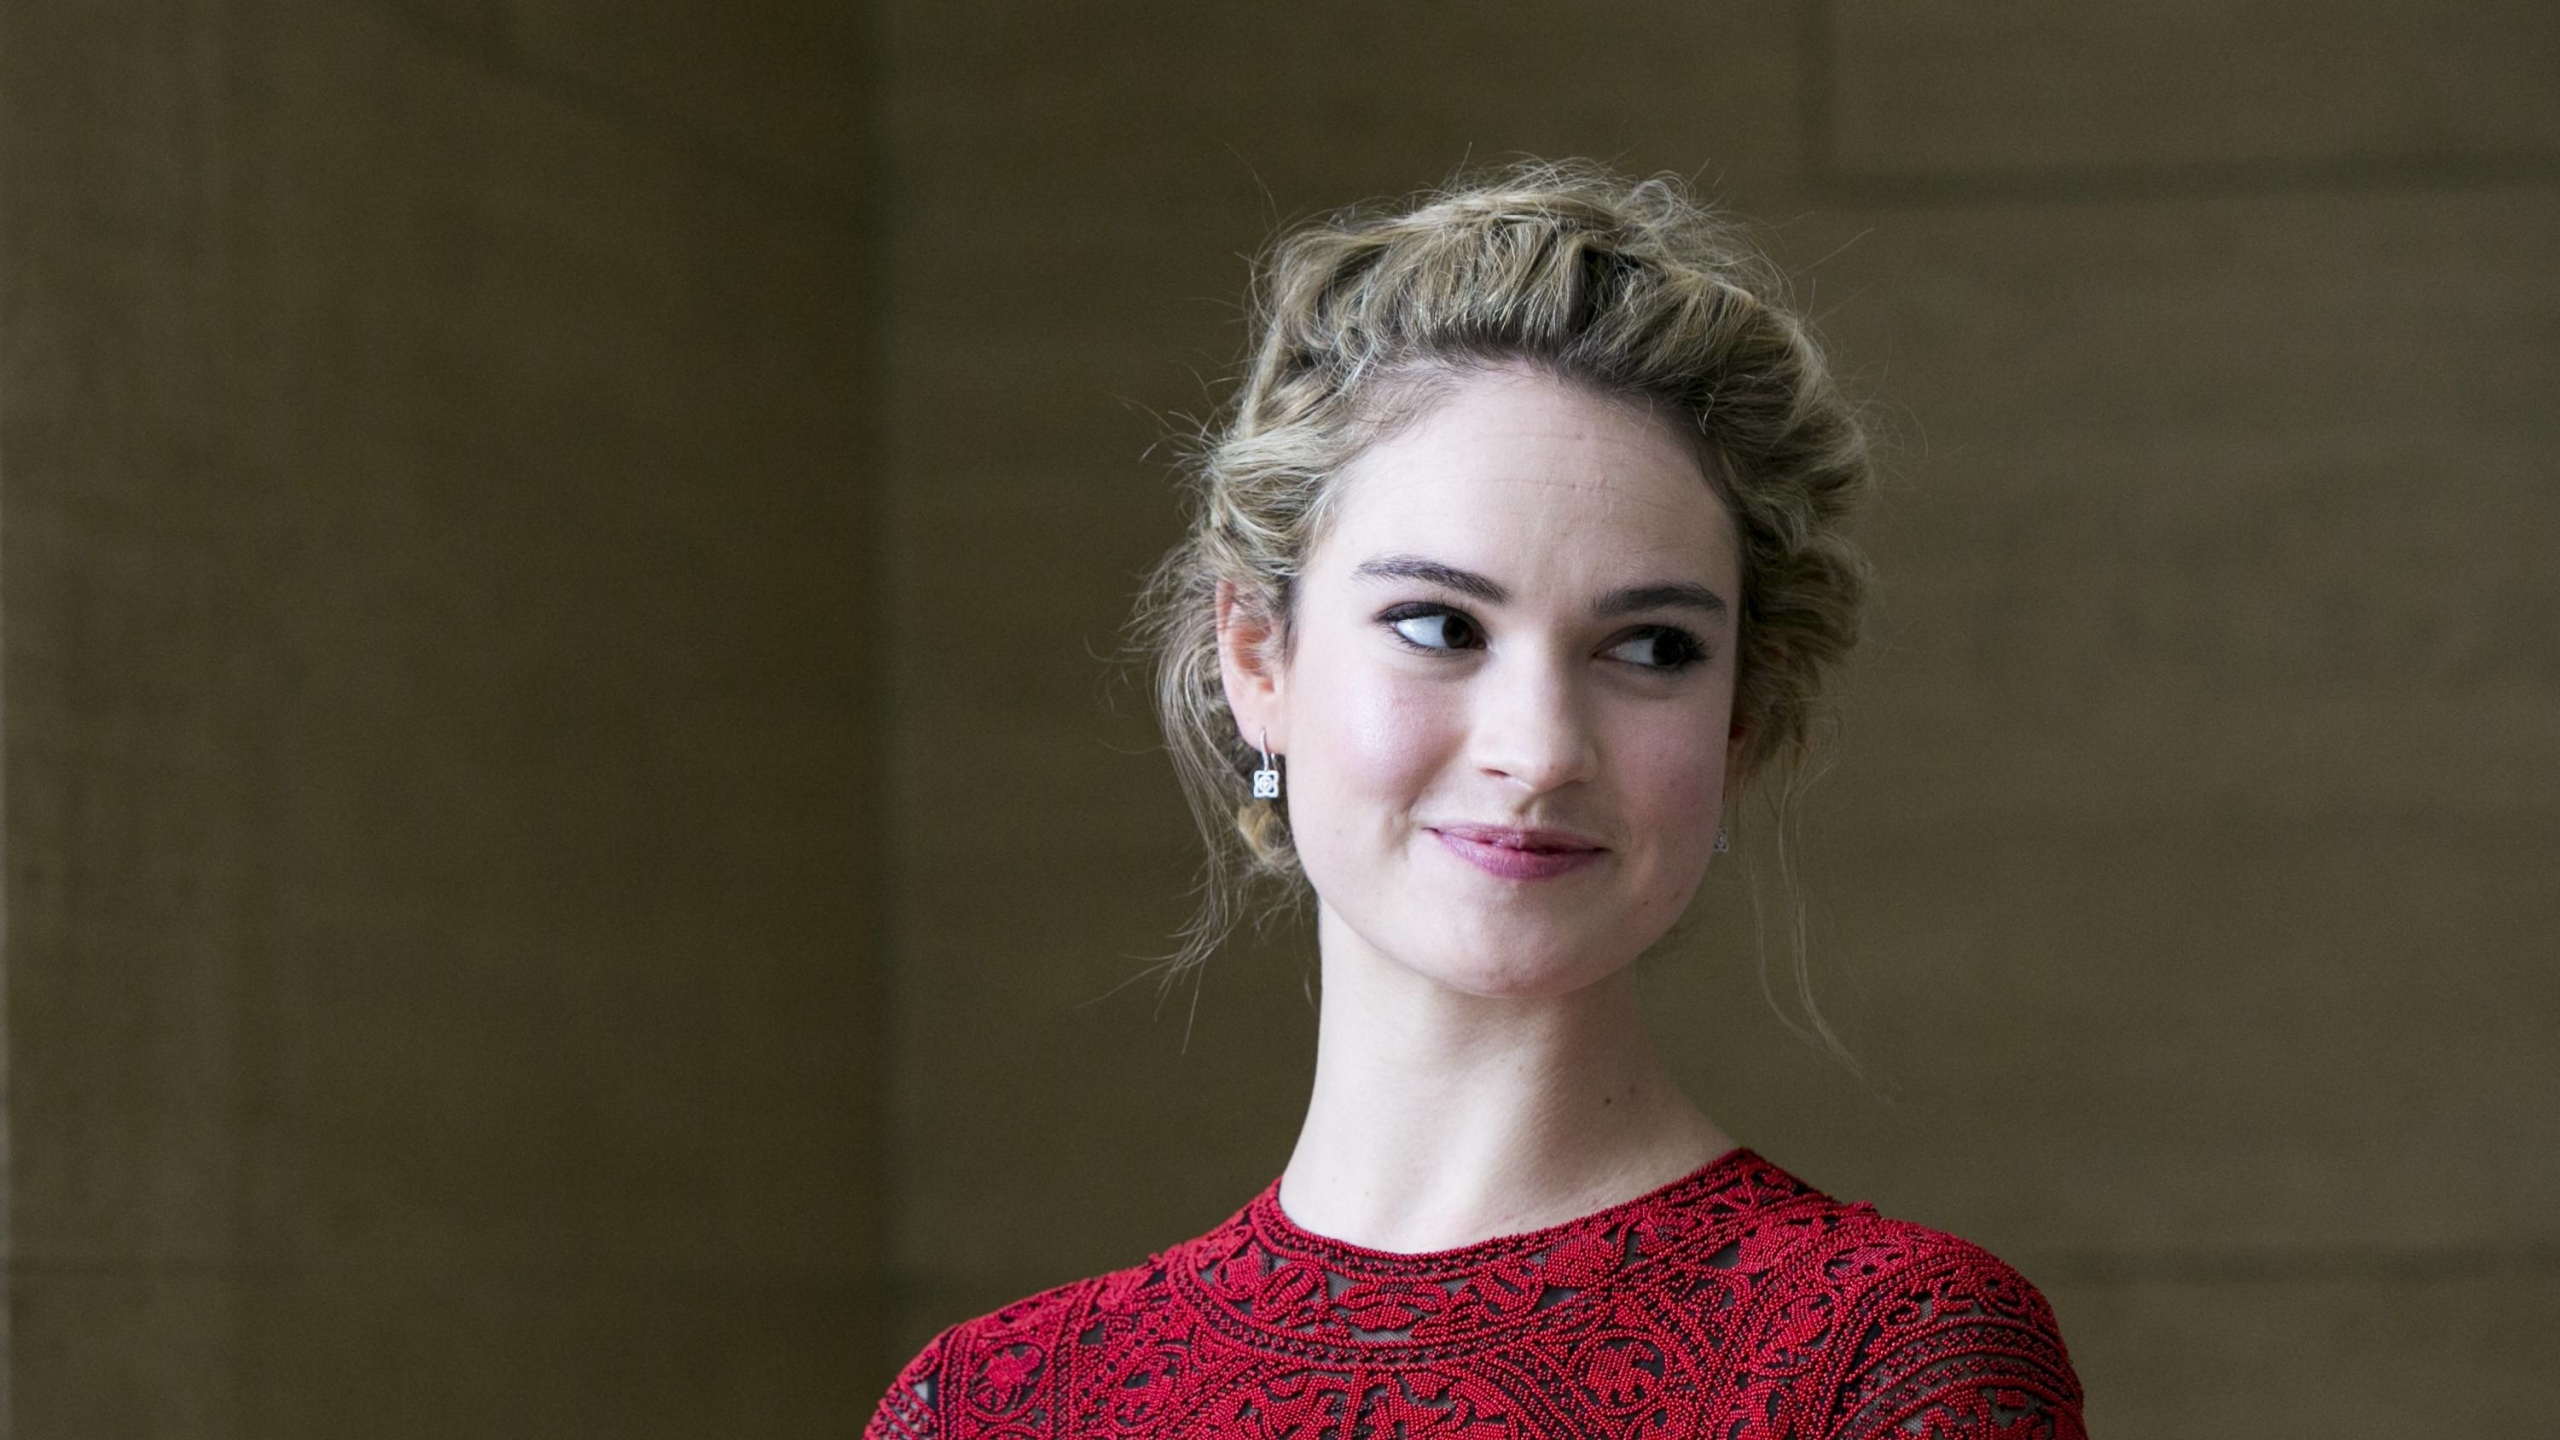 2560x1440 2019 Lily James 1440P Resolution Wallpaper HD 2560x1440